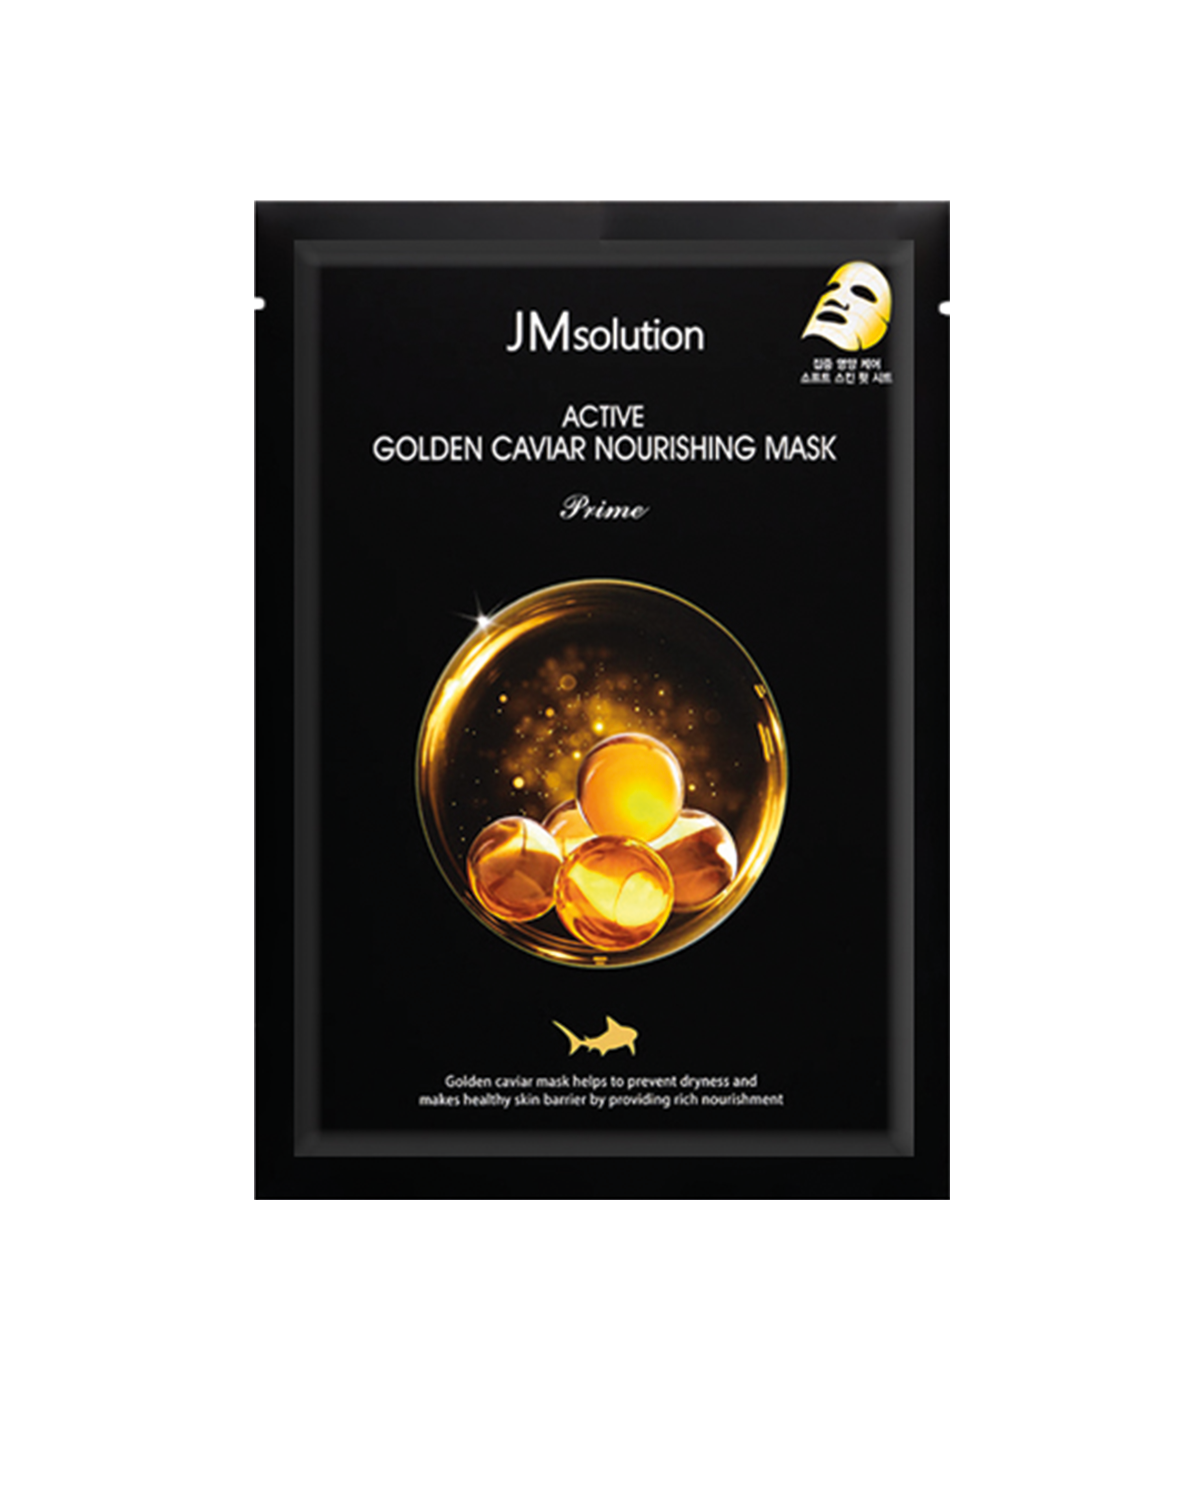 JM SOLUTION Active Golden Caviar Nourishing Mask Prime 30 ml